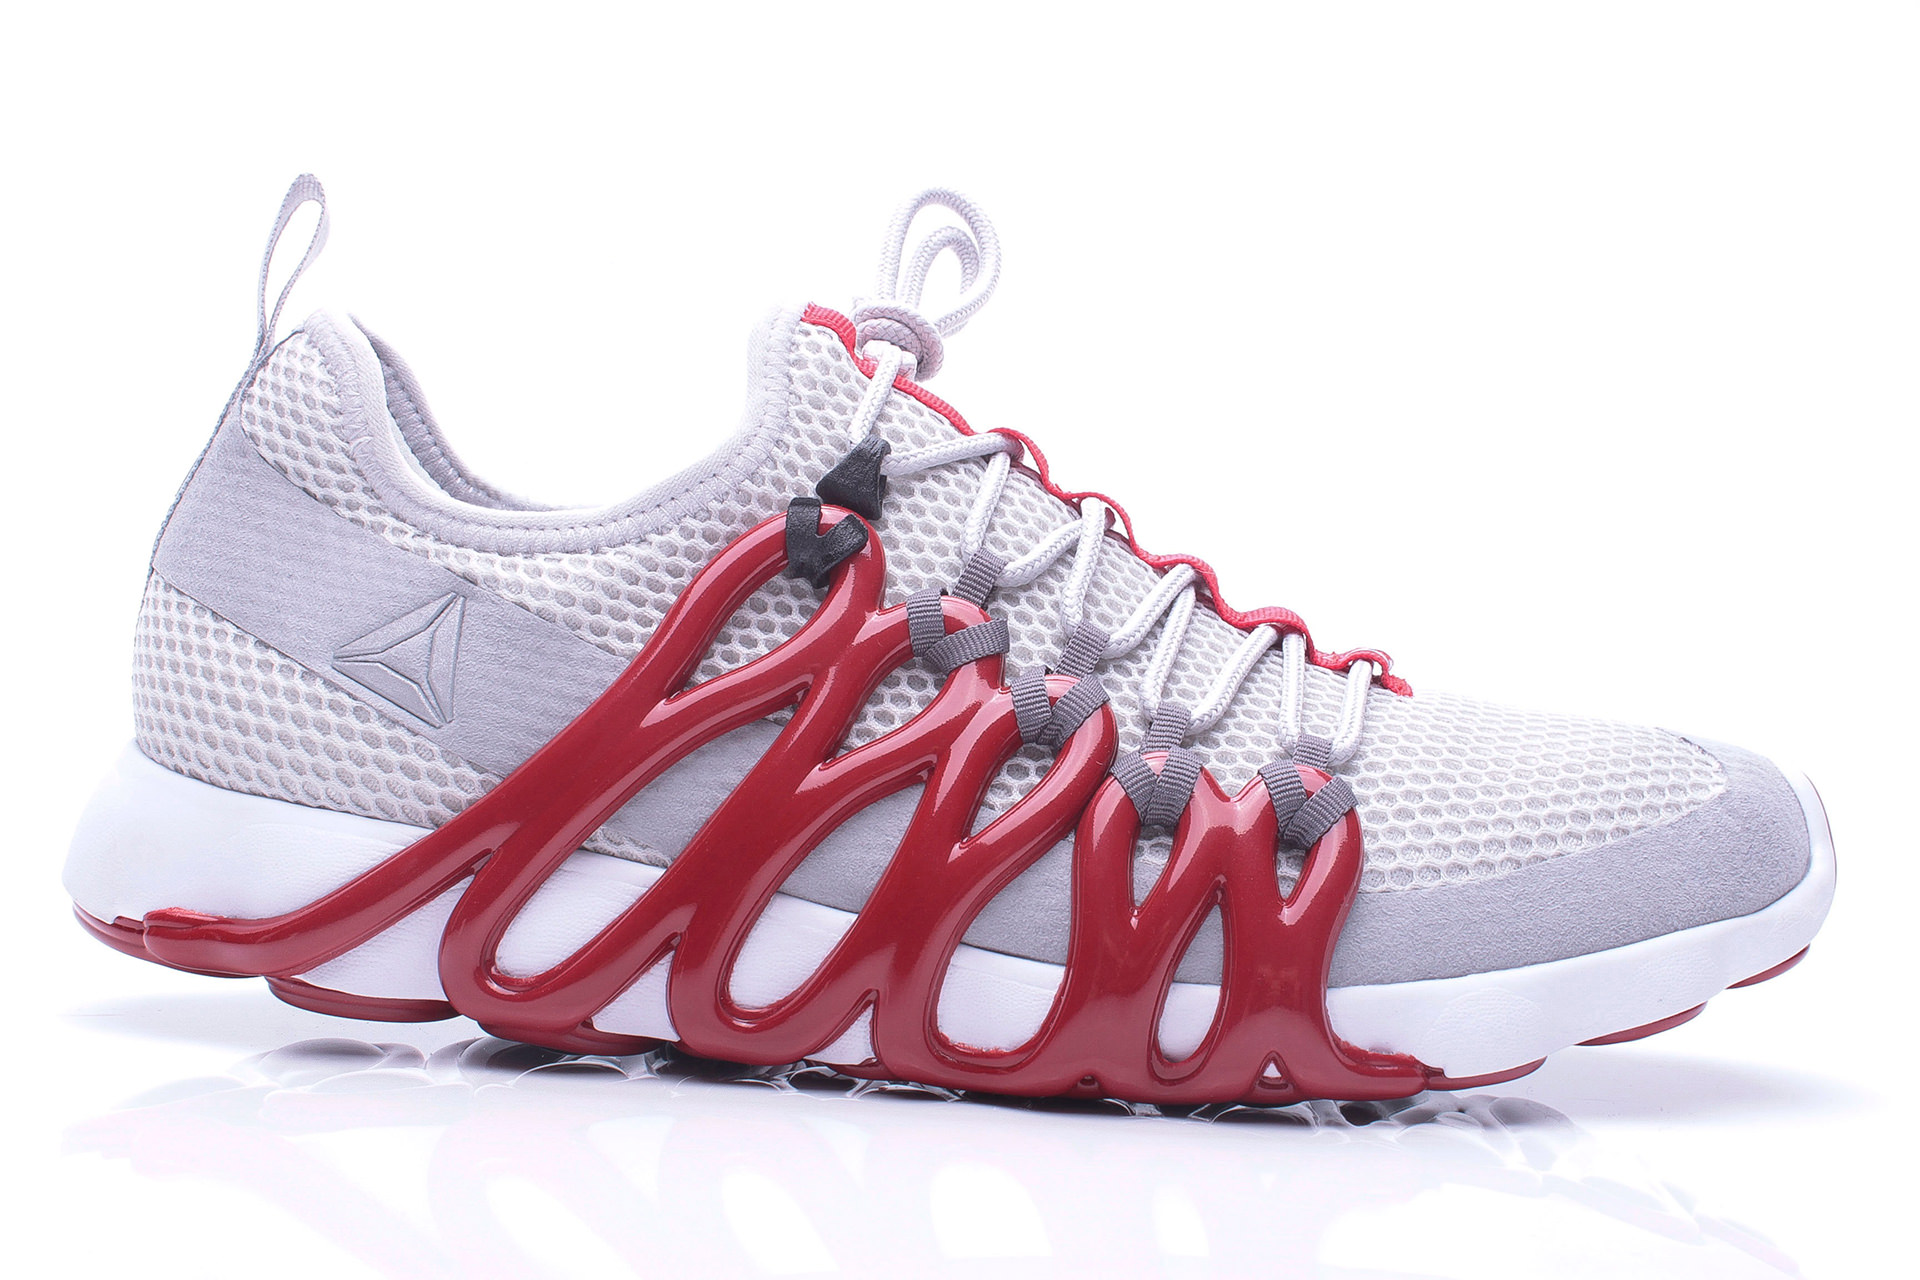 reebok-liquid-speed-sneakers-4